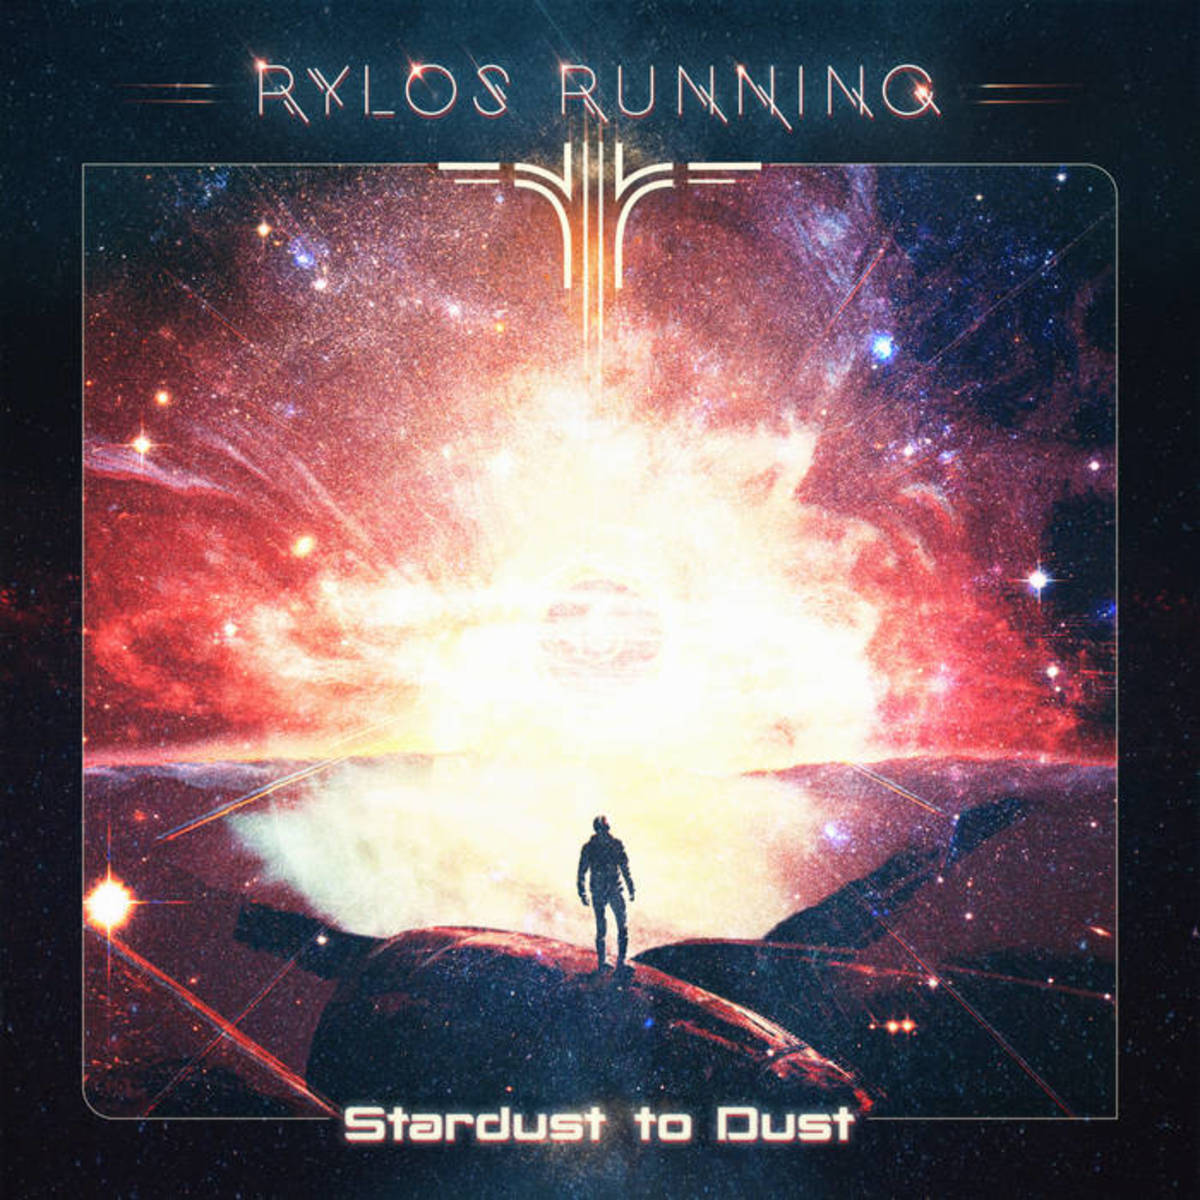 synth-ep-review-from-stardust-to-dust-by-rylos-running